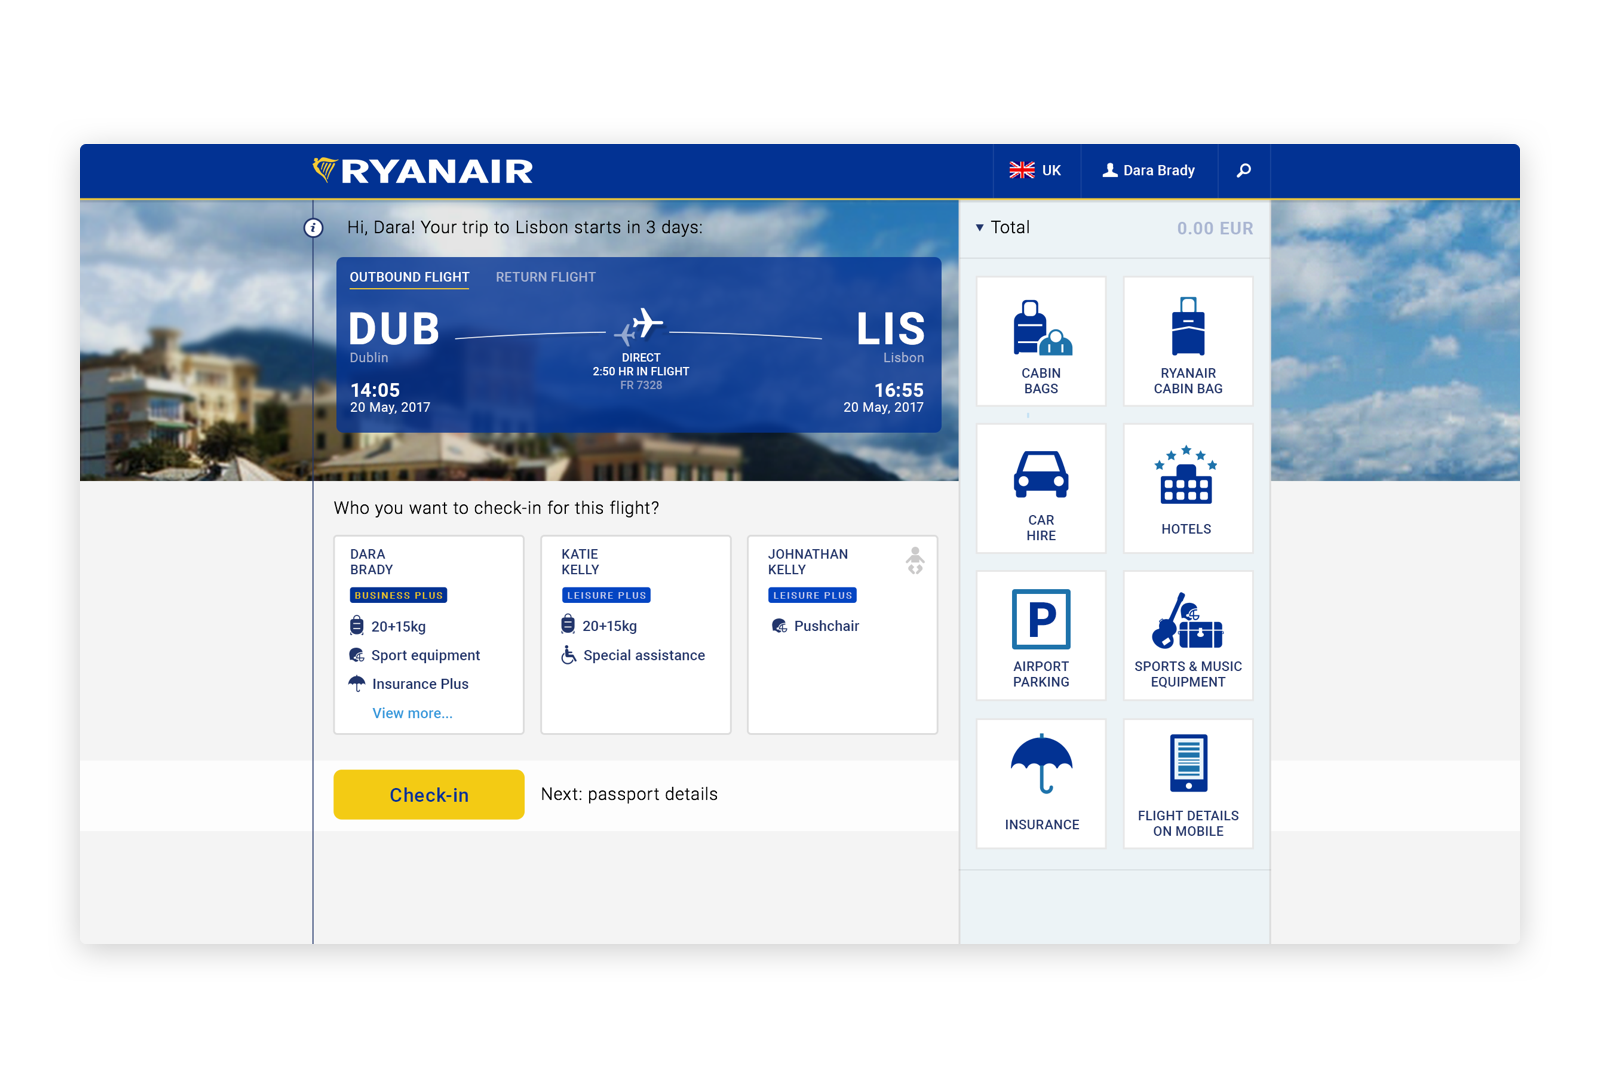 Ryanair check-in overview UI